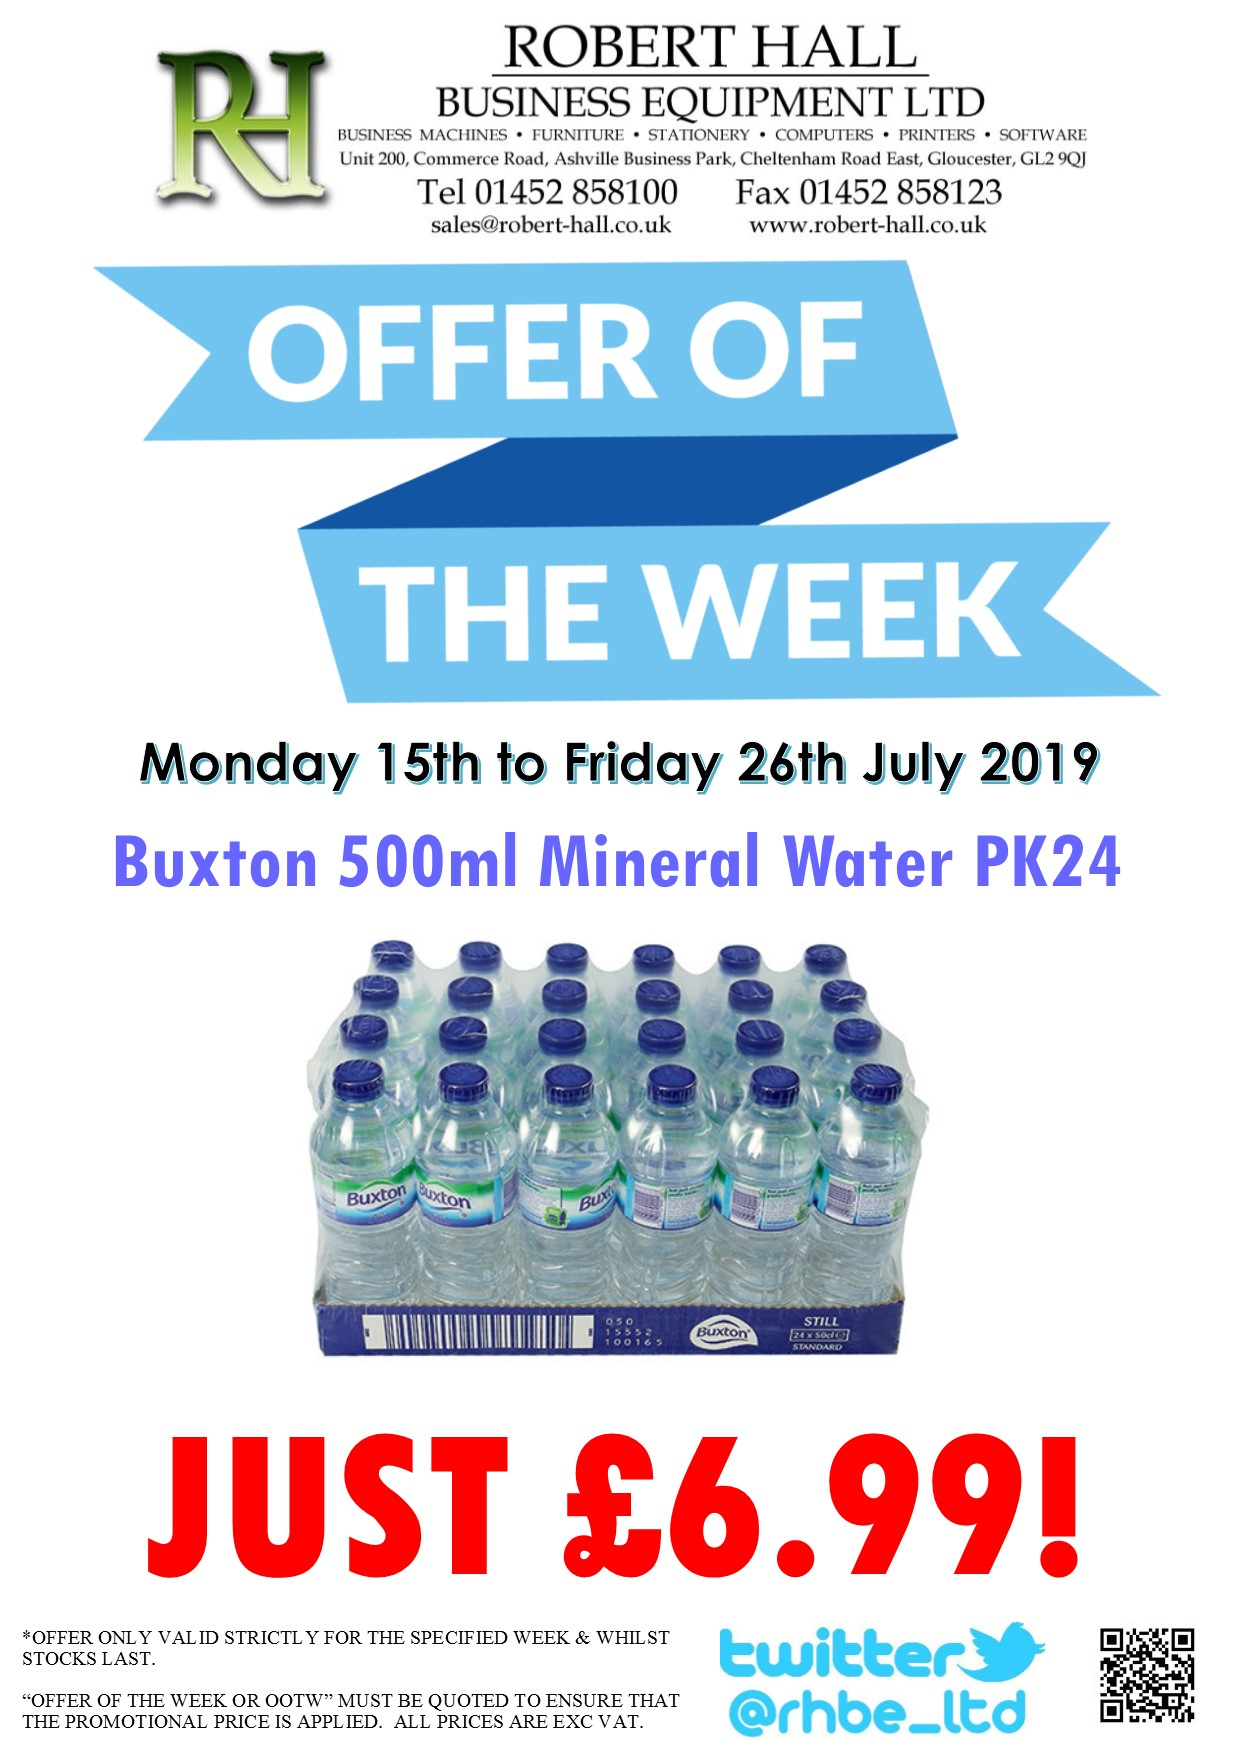 Offer Of The Week: Buxton 500ml Mineral Water PK24